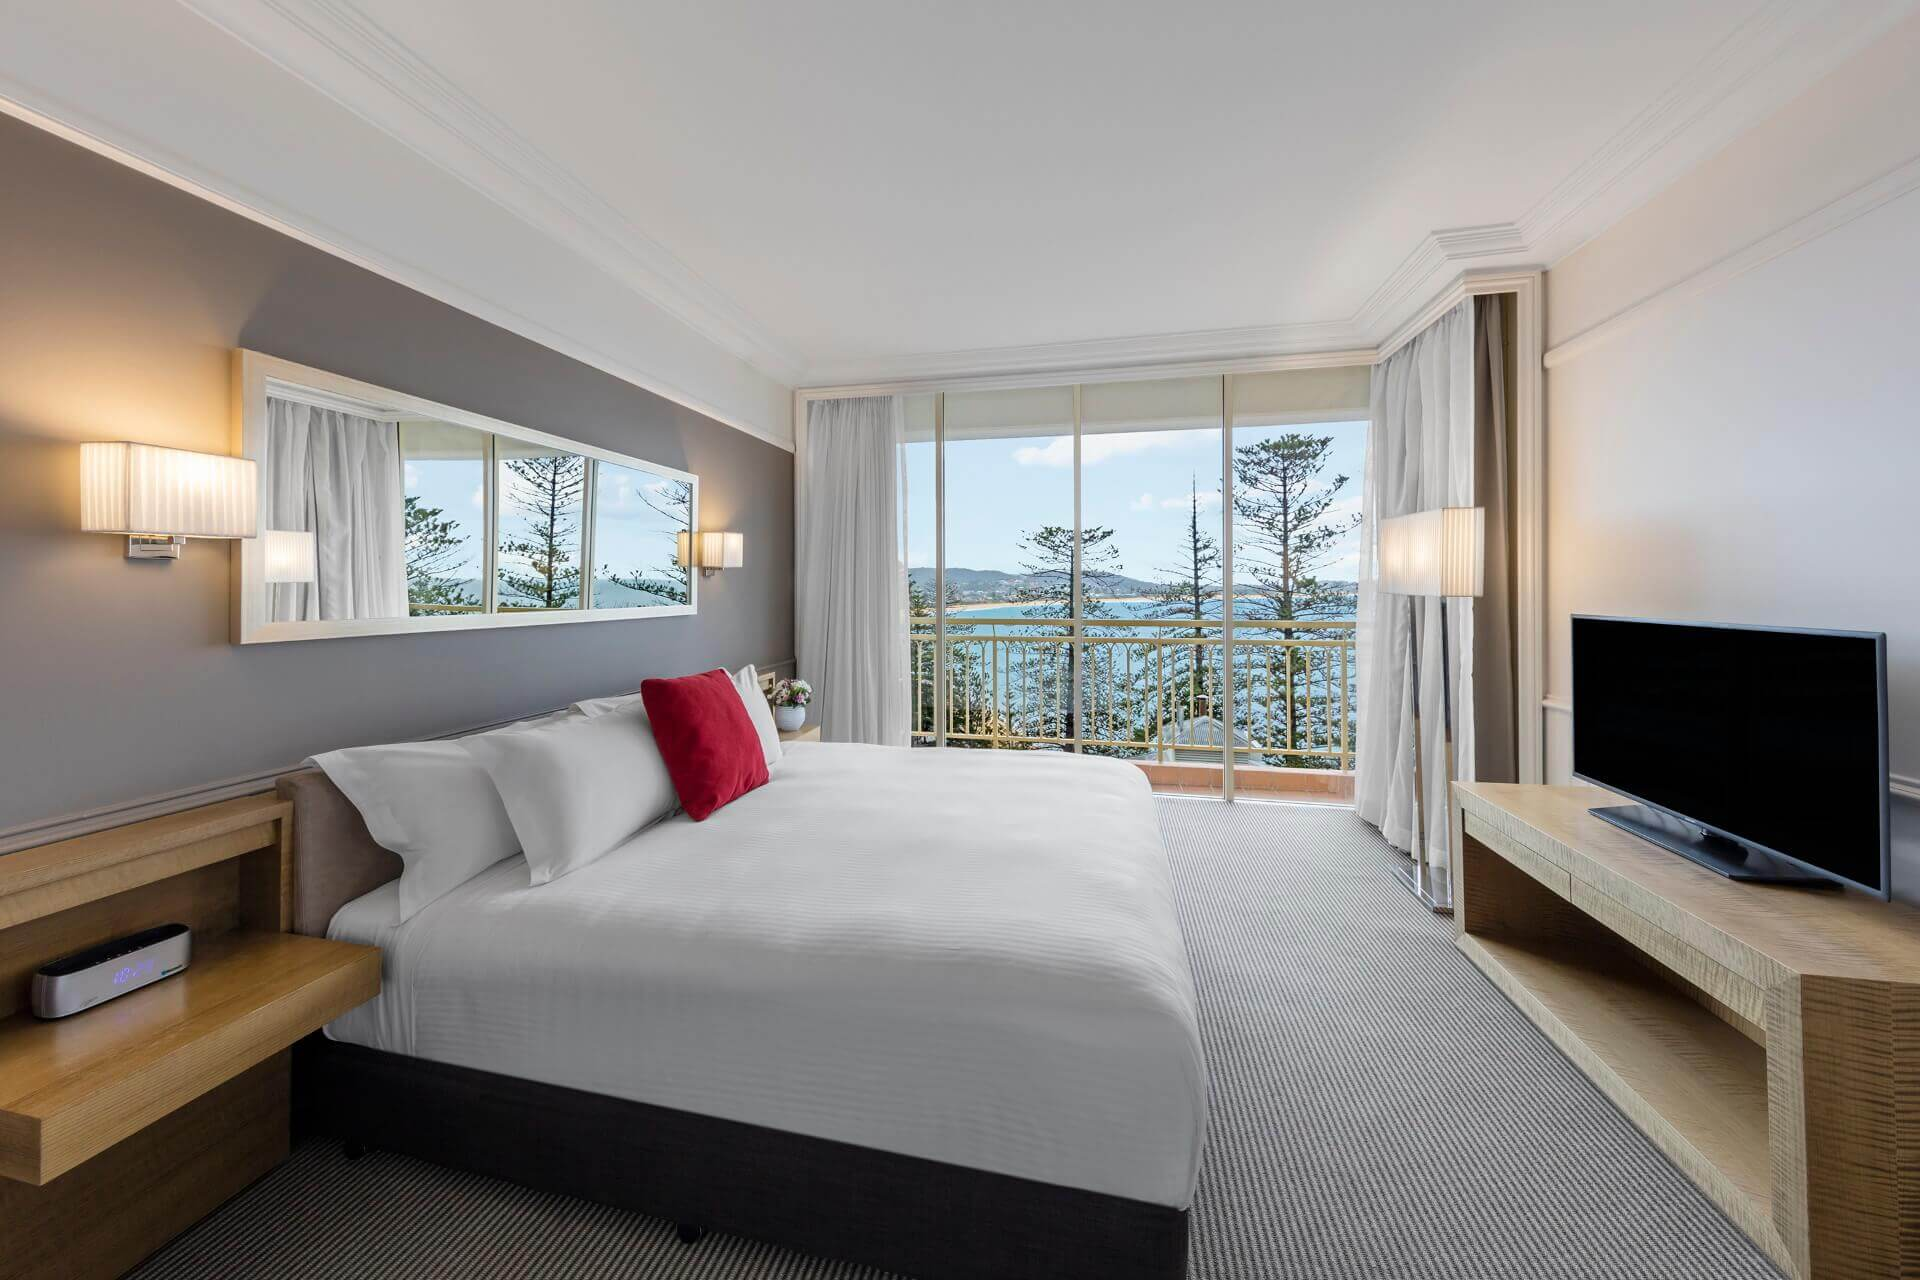 double bed in hotel room with ocean view